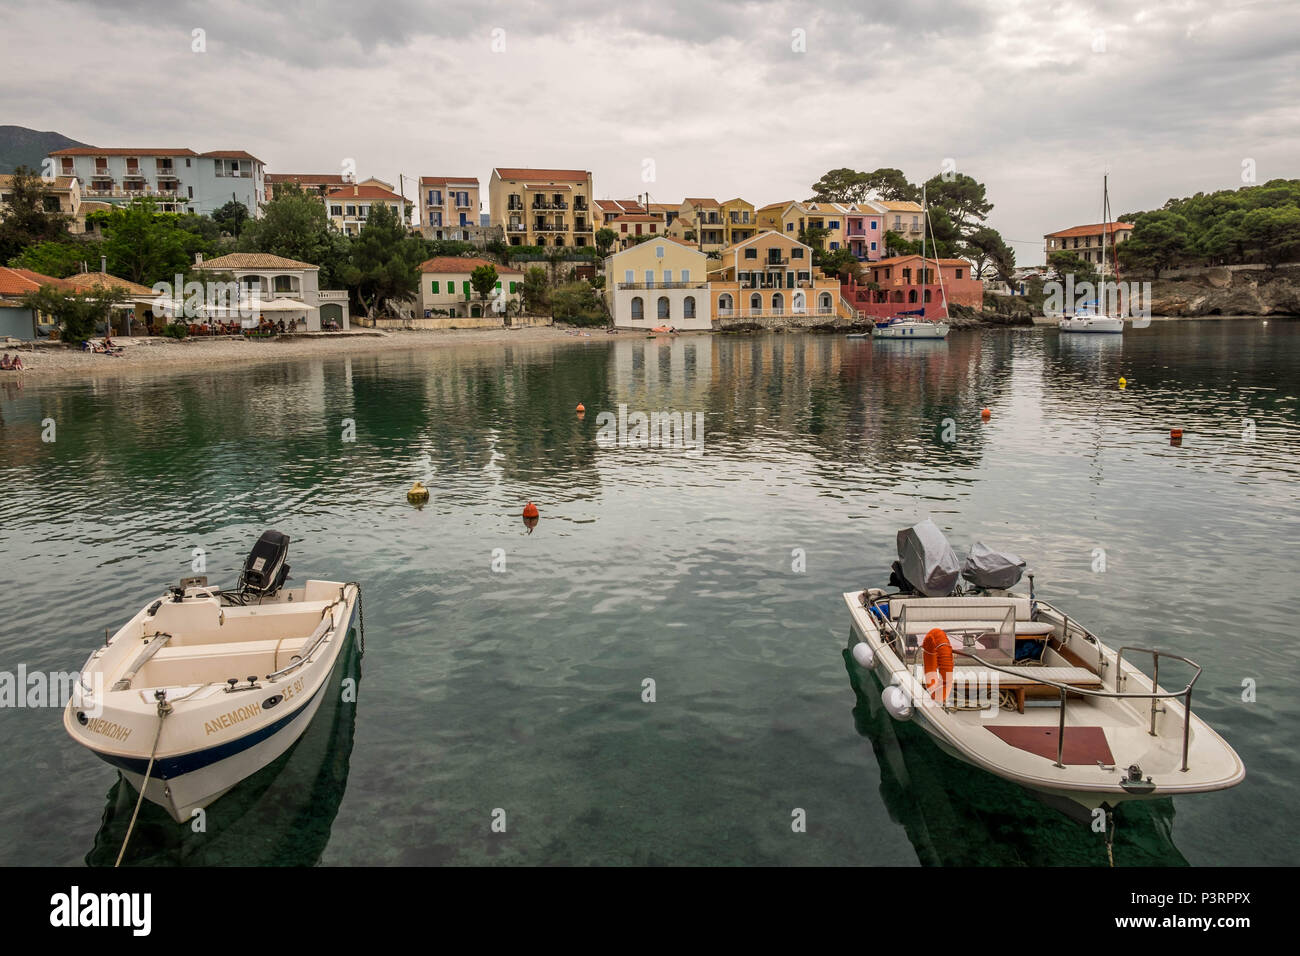 Assos beach showing small boats and crane for lifting boats out of the water. - Stock Image